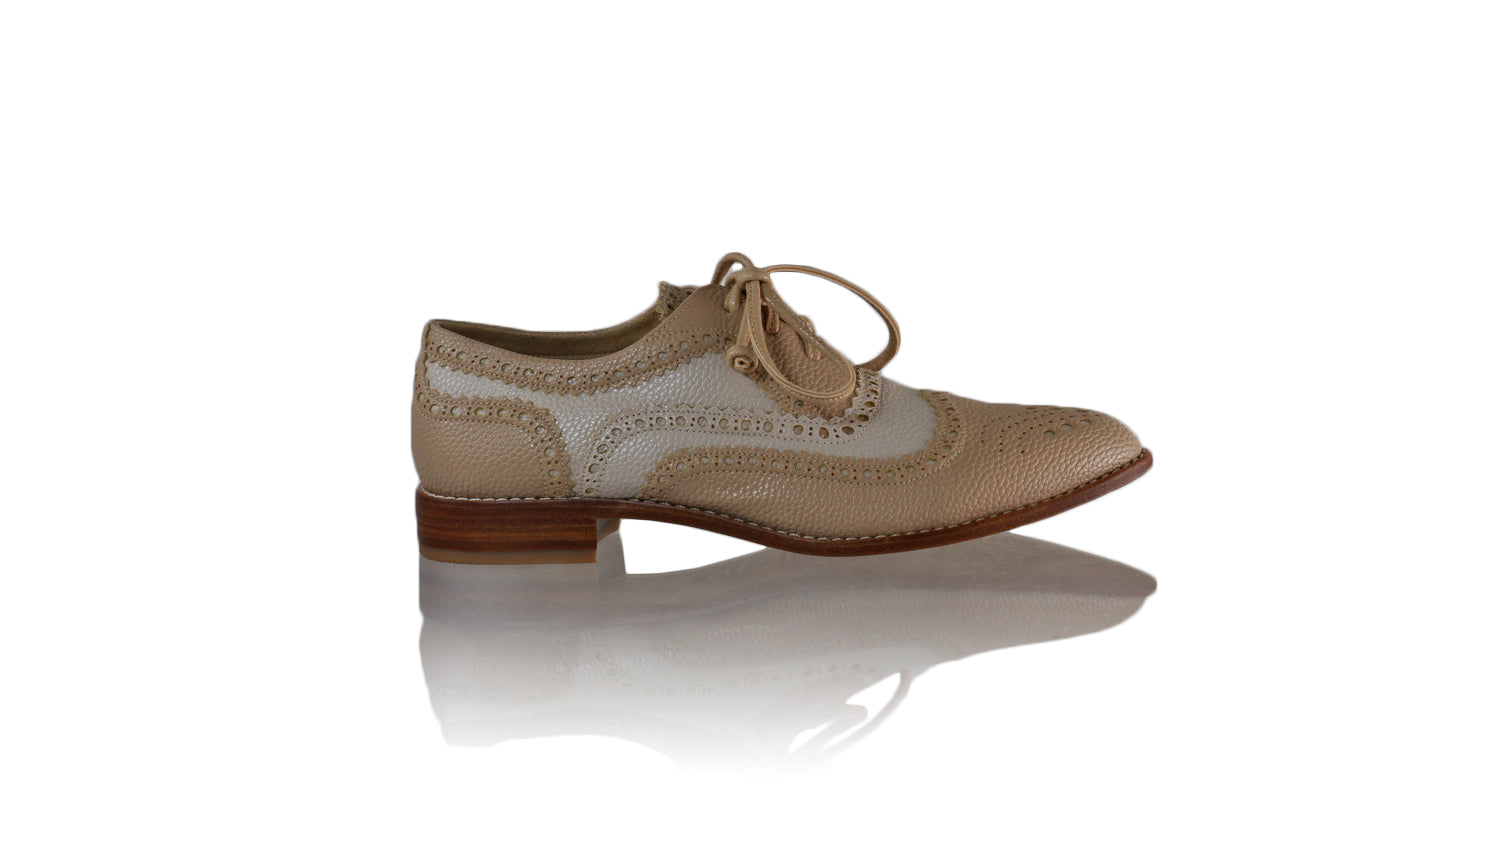 Leather-shoes-Pedro 25mm Flat - Nude & Cream Faux Leather-flats laceup-NILUH DJELANTIK-NILUH DJELANTIK